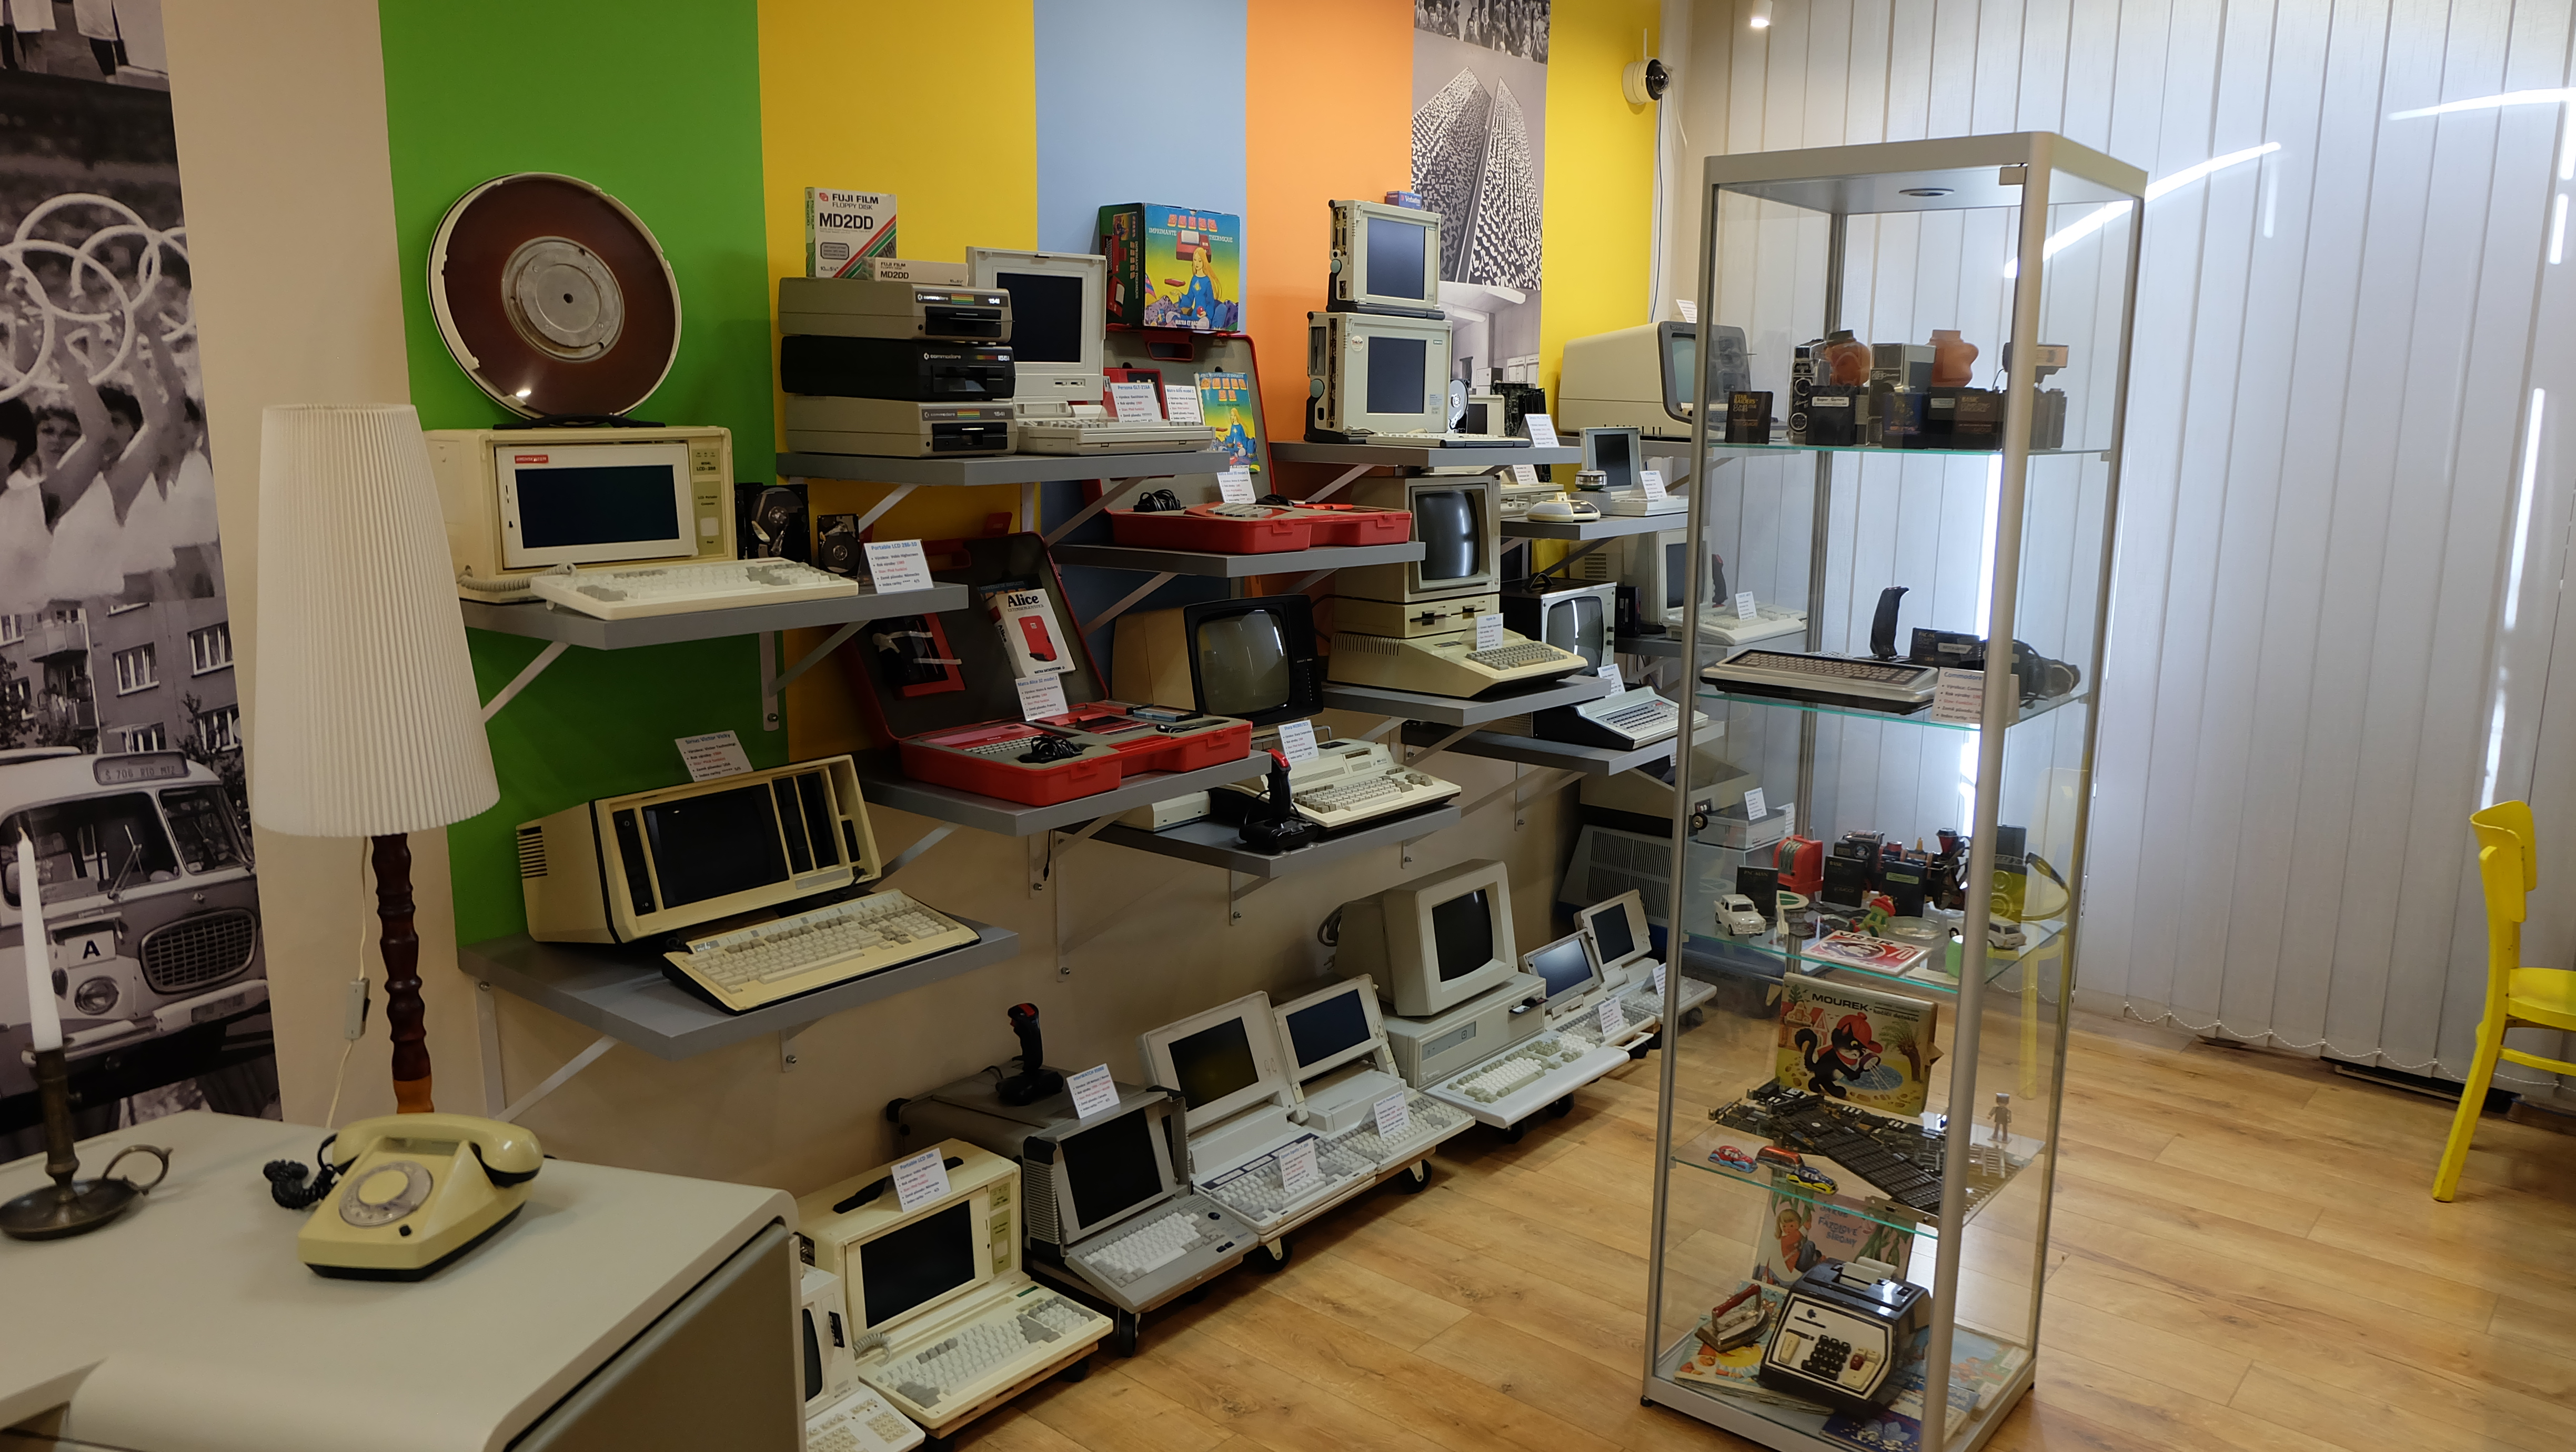 Vintage Computers and notebooks